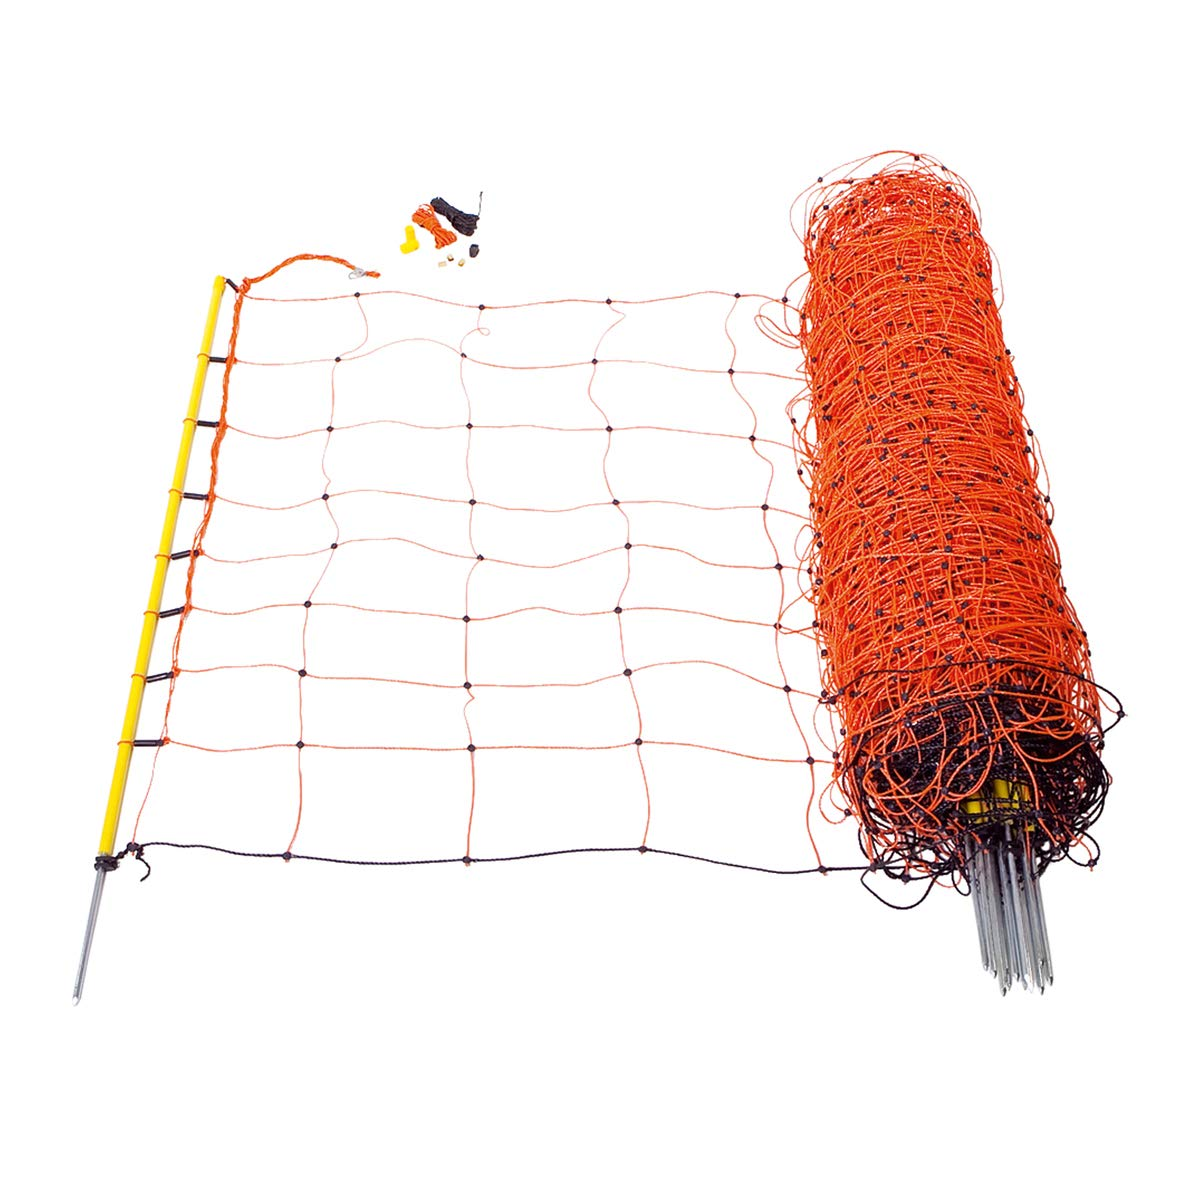 Doblit Electrified Netting For Sheep Goats Pigs etc Netting Single Pole 14 pegs 50m 90cm High